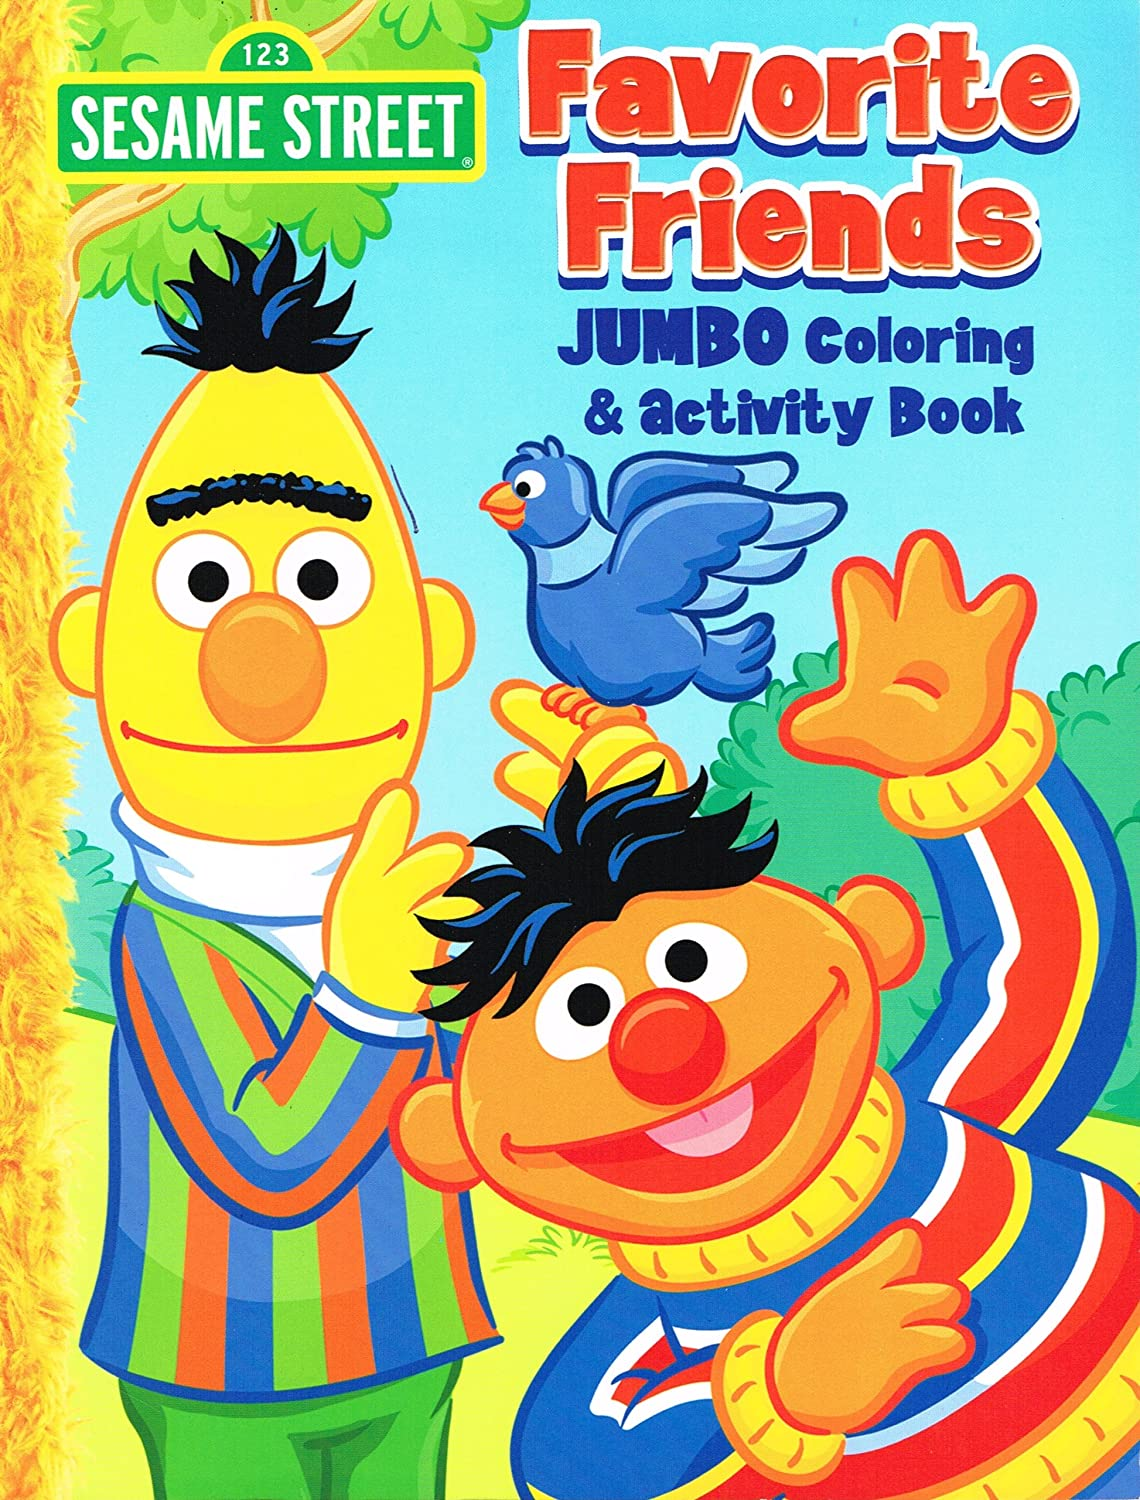 Sesame Street Elmo Jumbo coloring Book  Favorite Friends